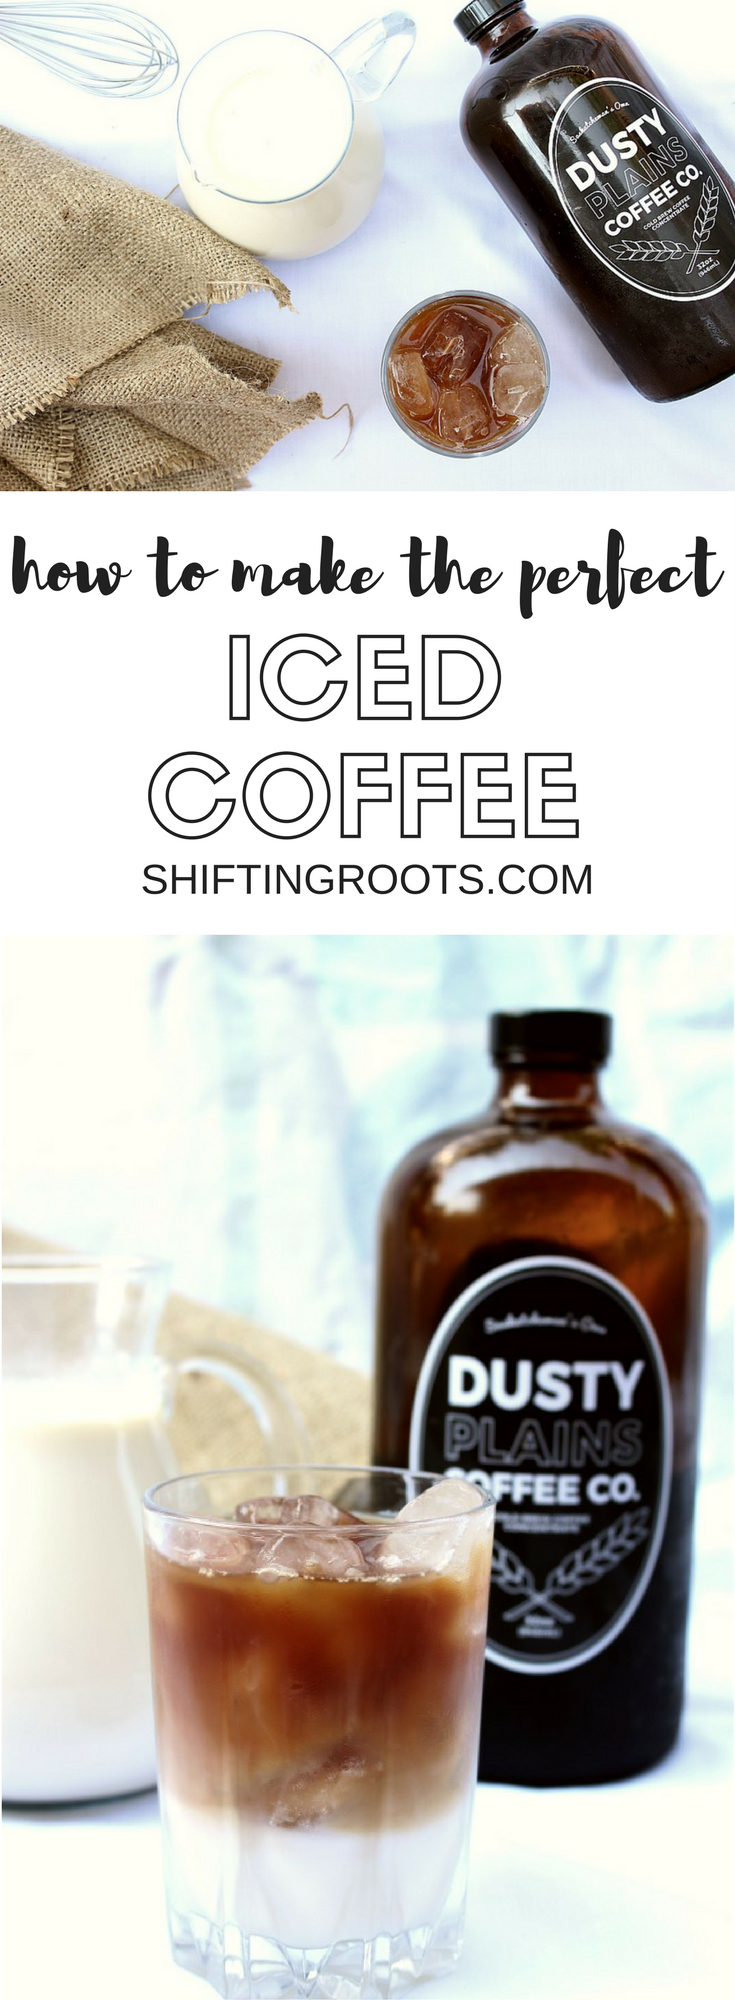 Learn how to make the perfect iced coffee and beat the heat this summer.  Not to mention all the money you'll save.  Such an easy recipe that you'll avoid going to the drive through.